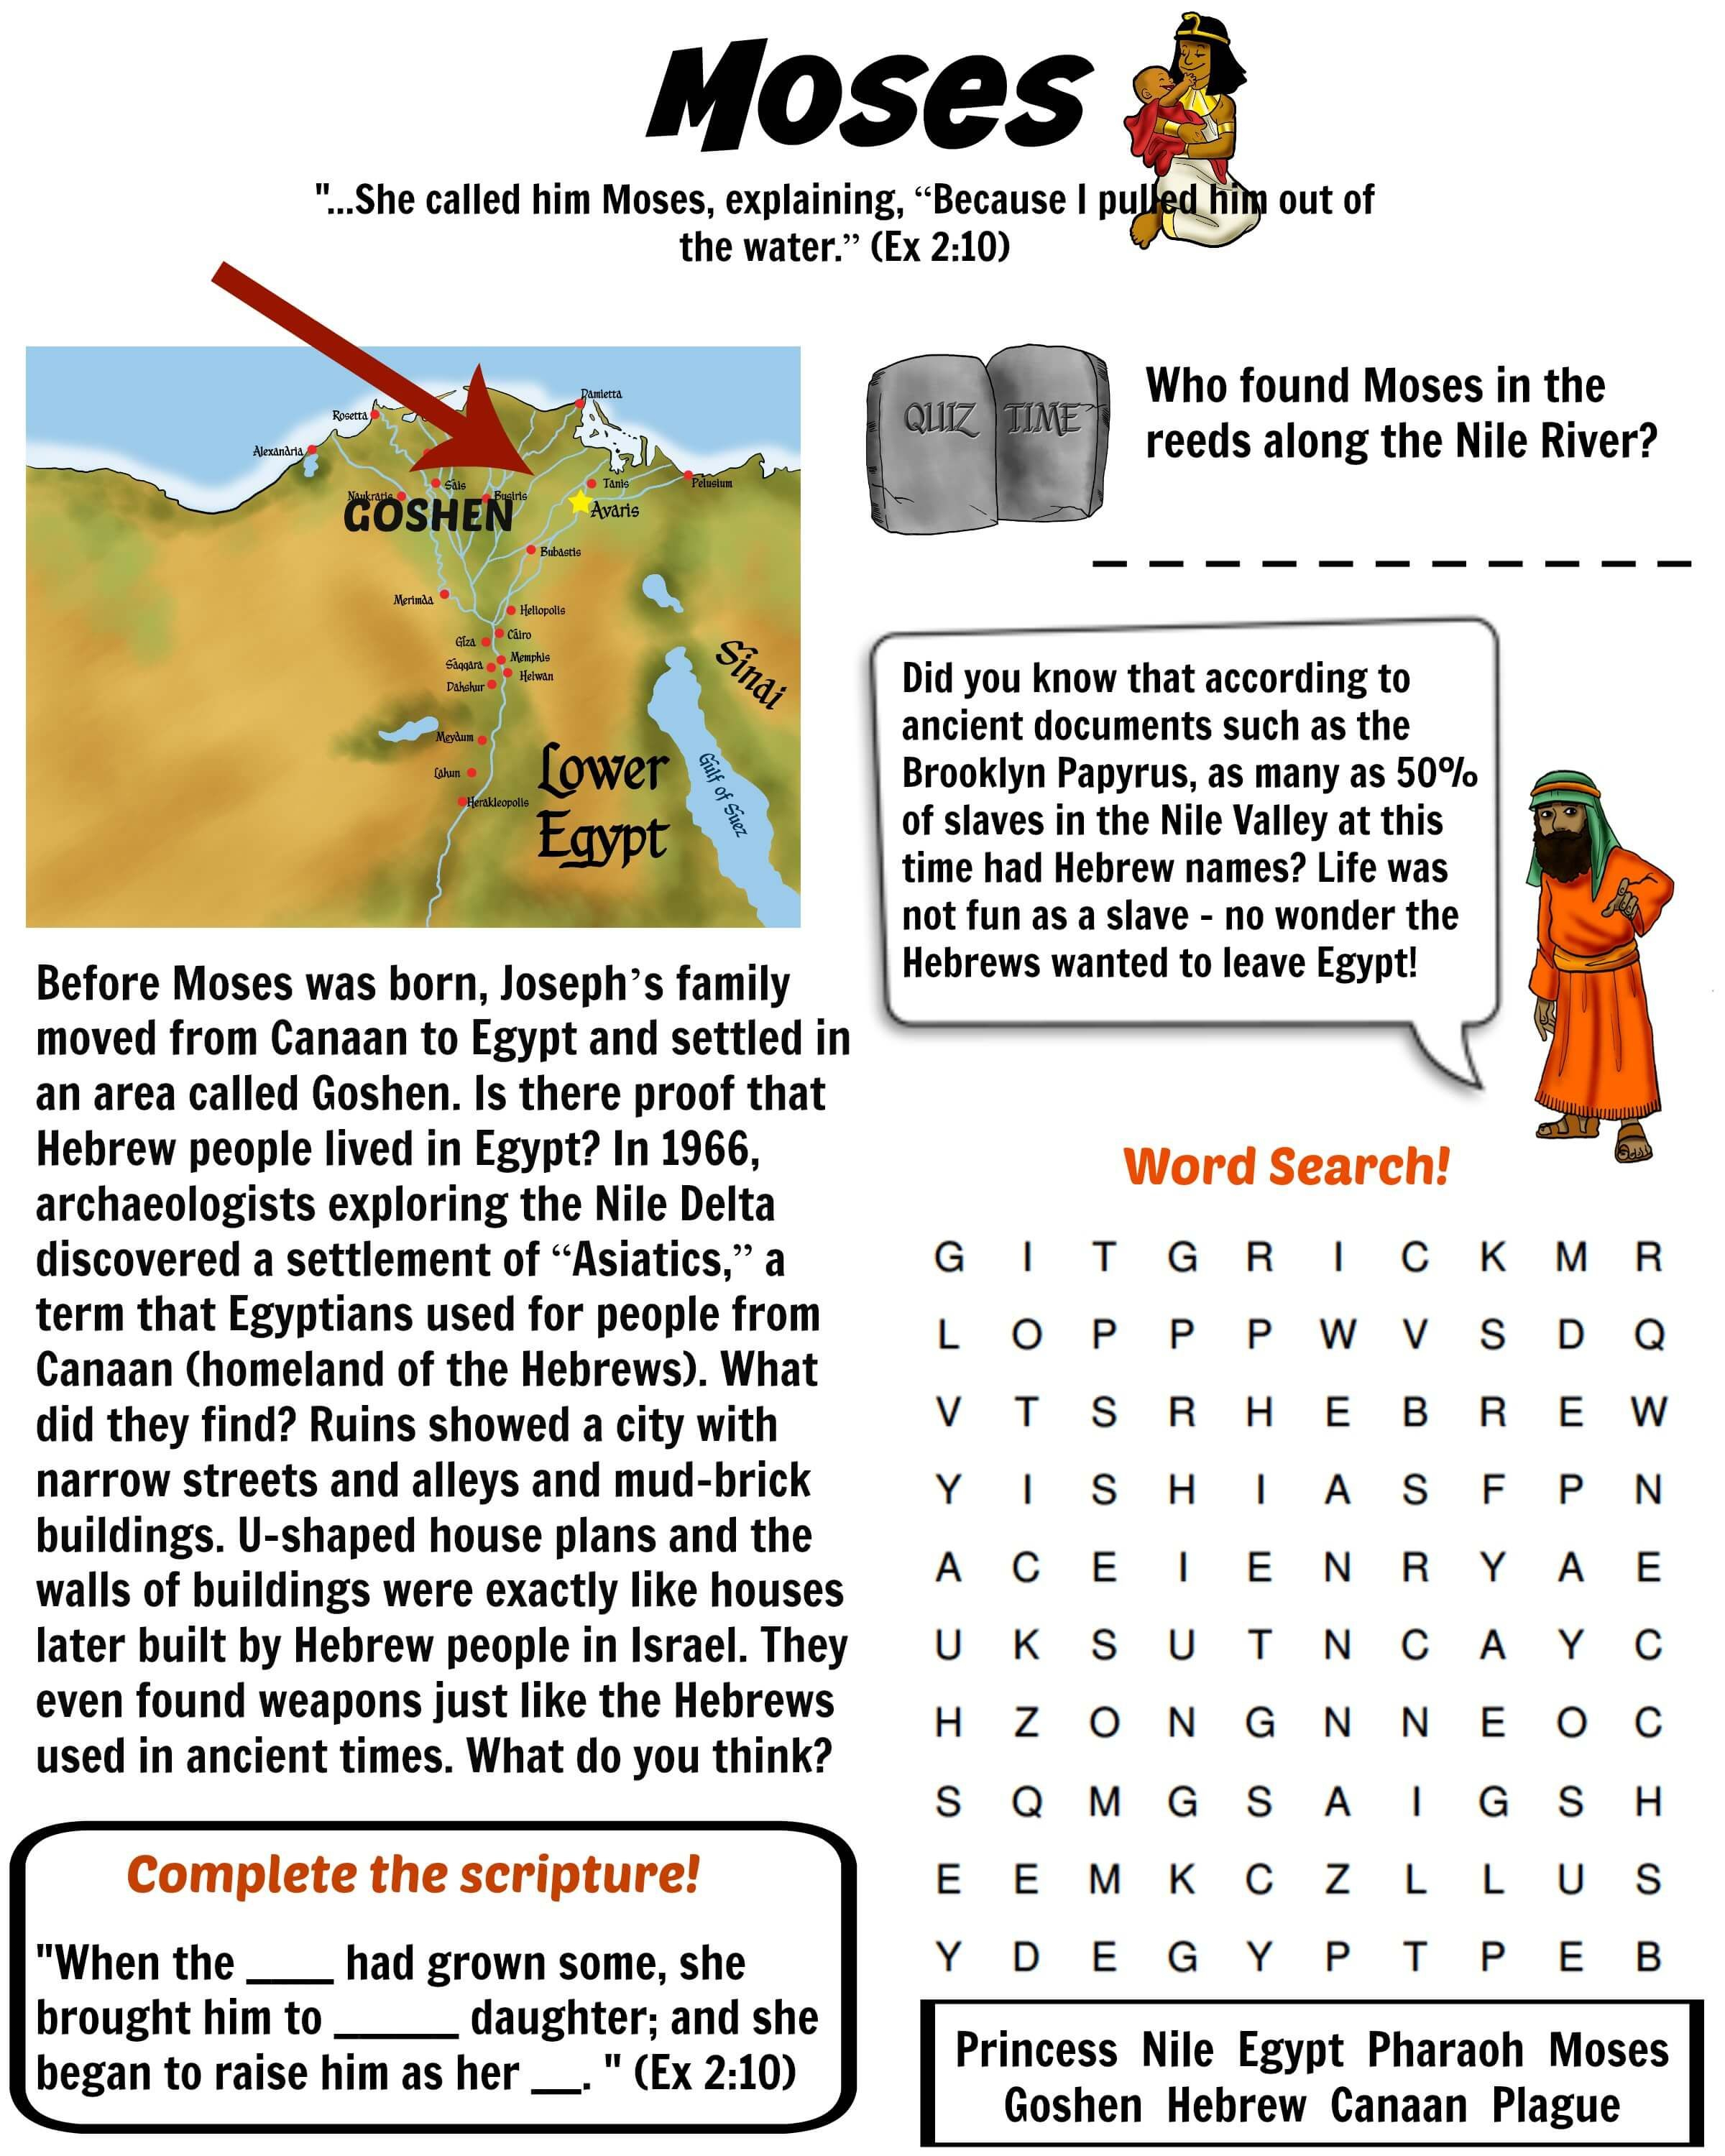 Ten Plagues Of Egypt Word Search Puzzle